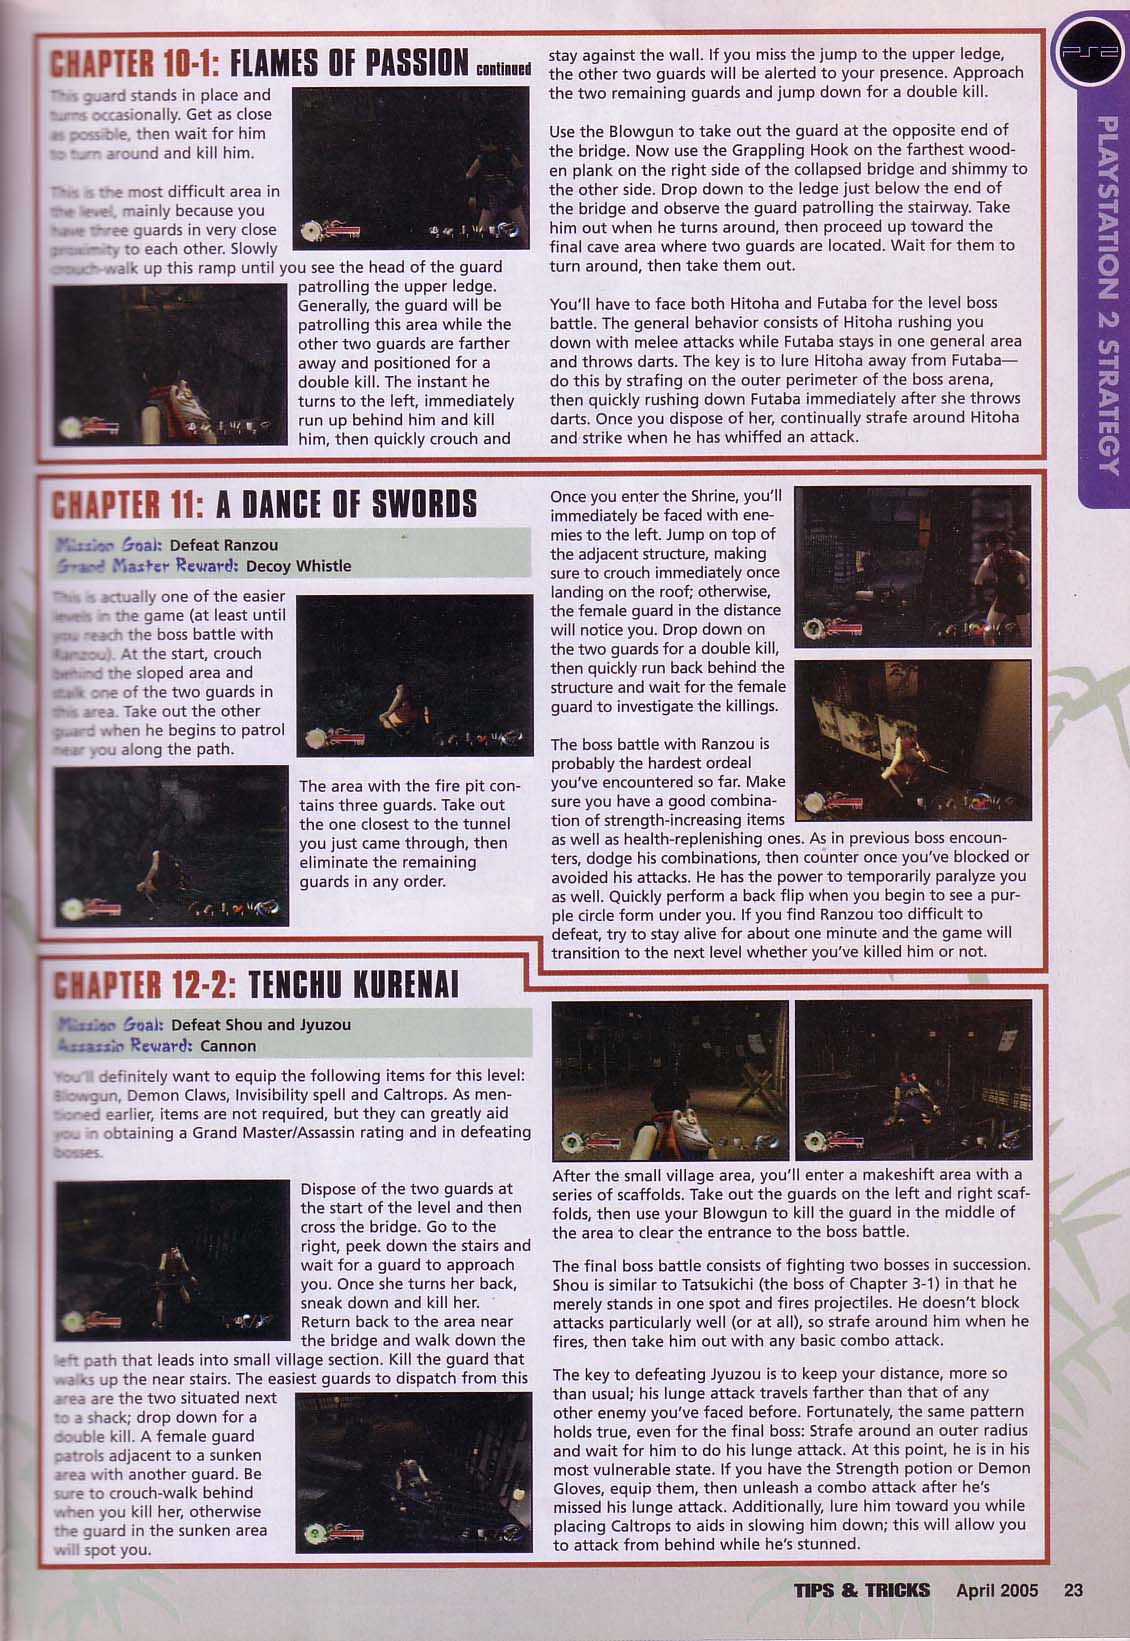 TipsandTricks_April_2005_Tenchu_pg6_Strategy.jpg